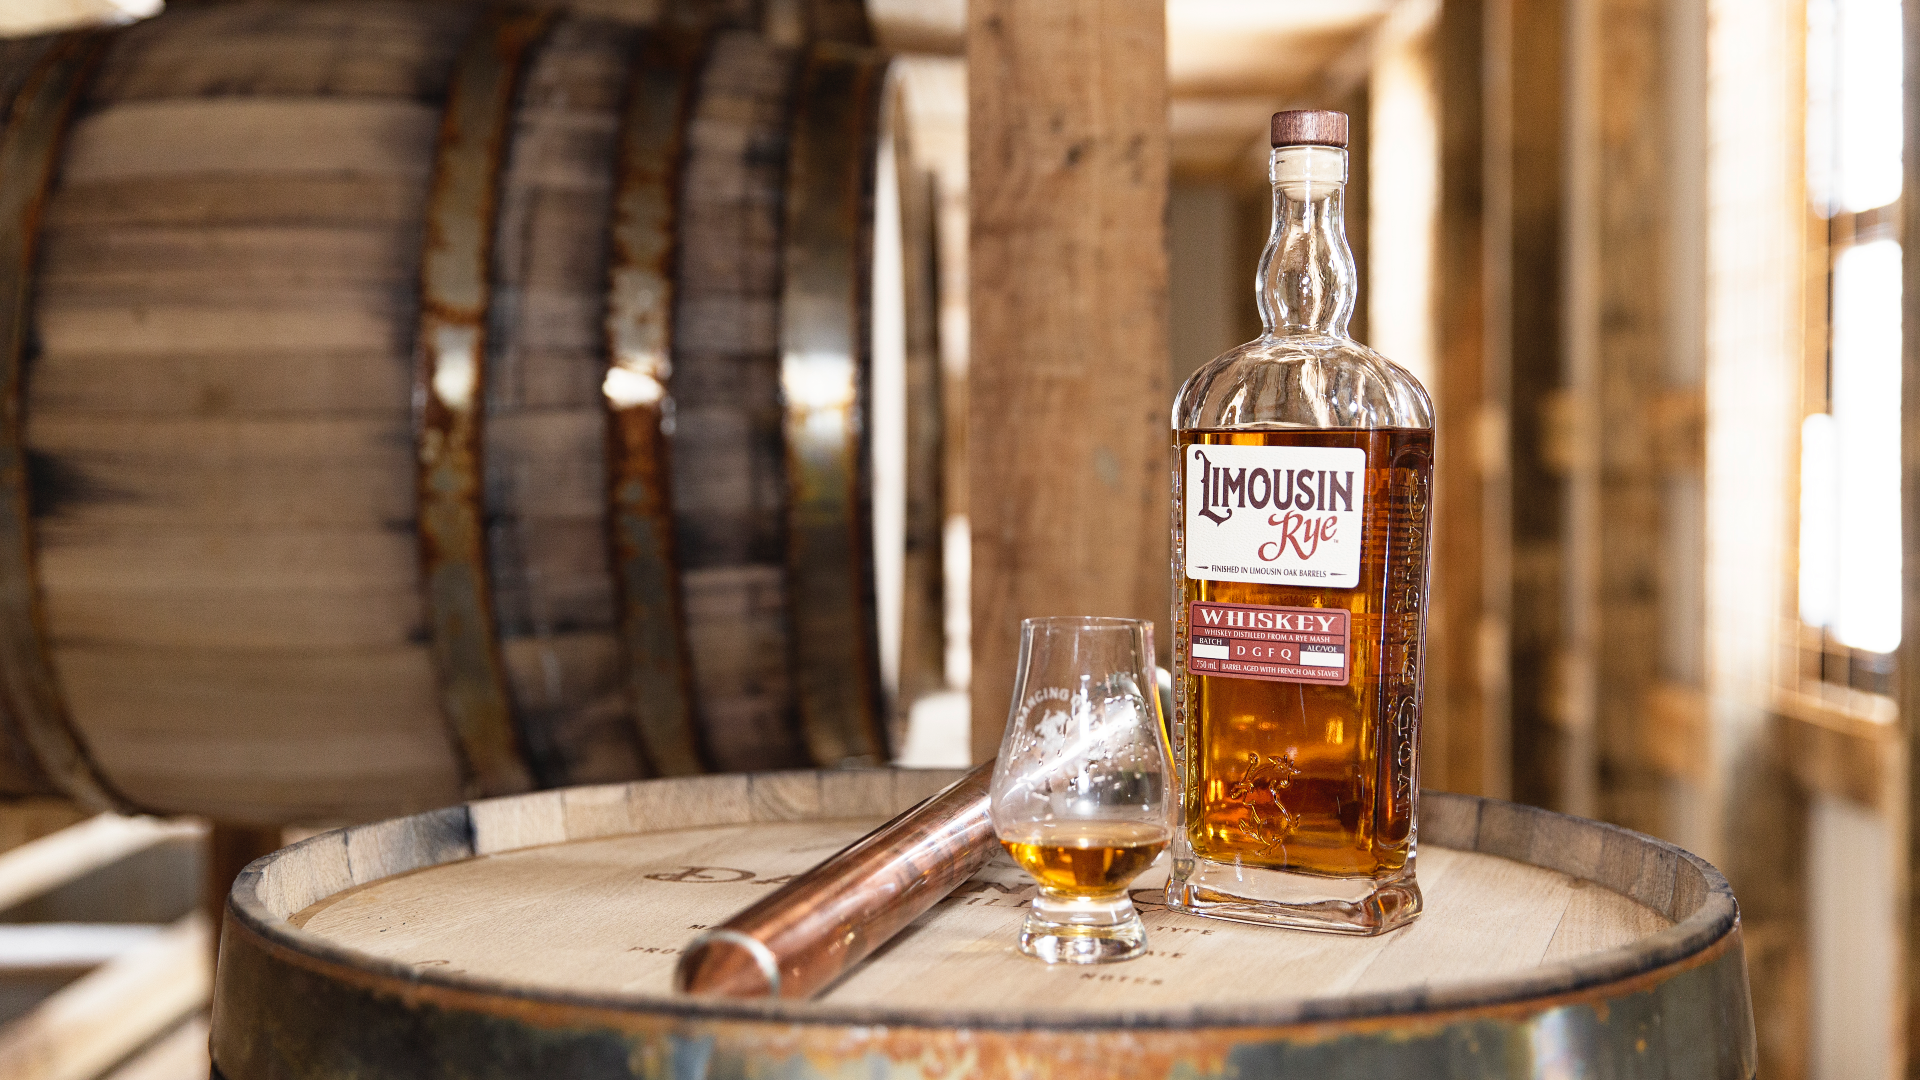 A bottle of Limousine Rye Whiskey and a glass stand on top of a distilling barrel.